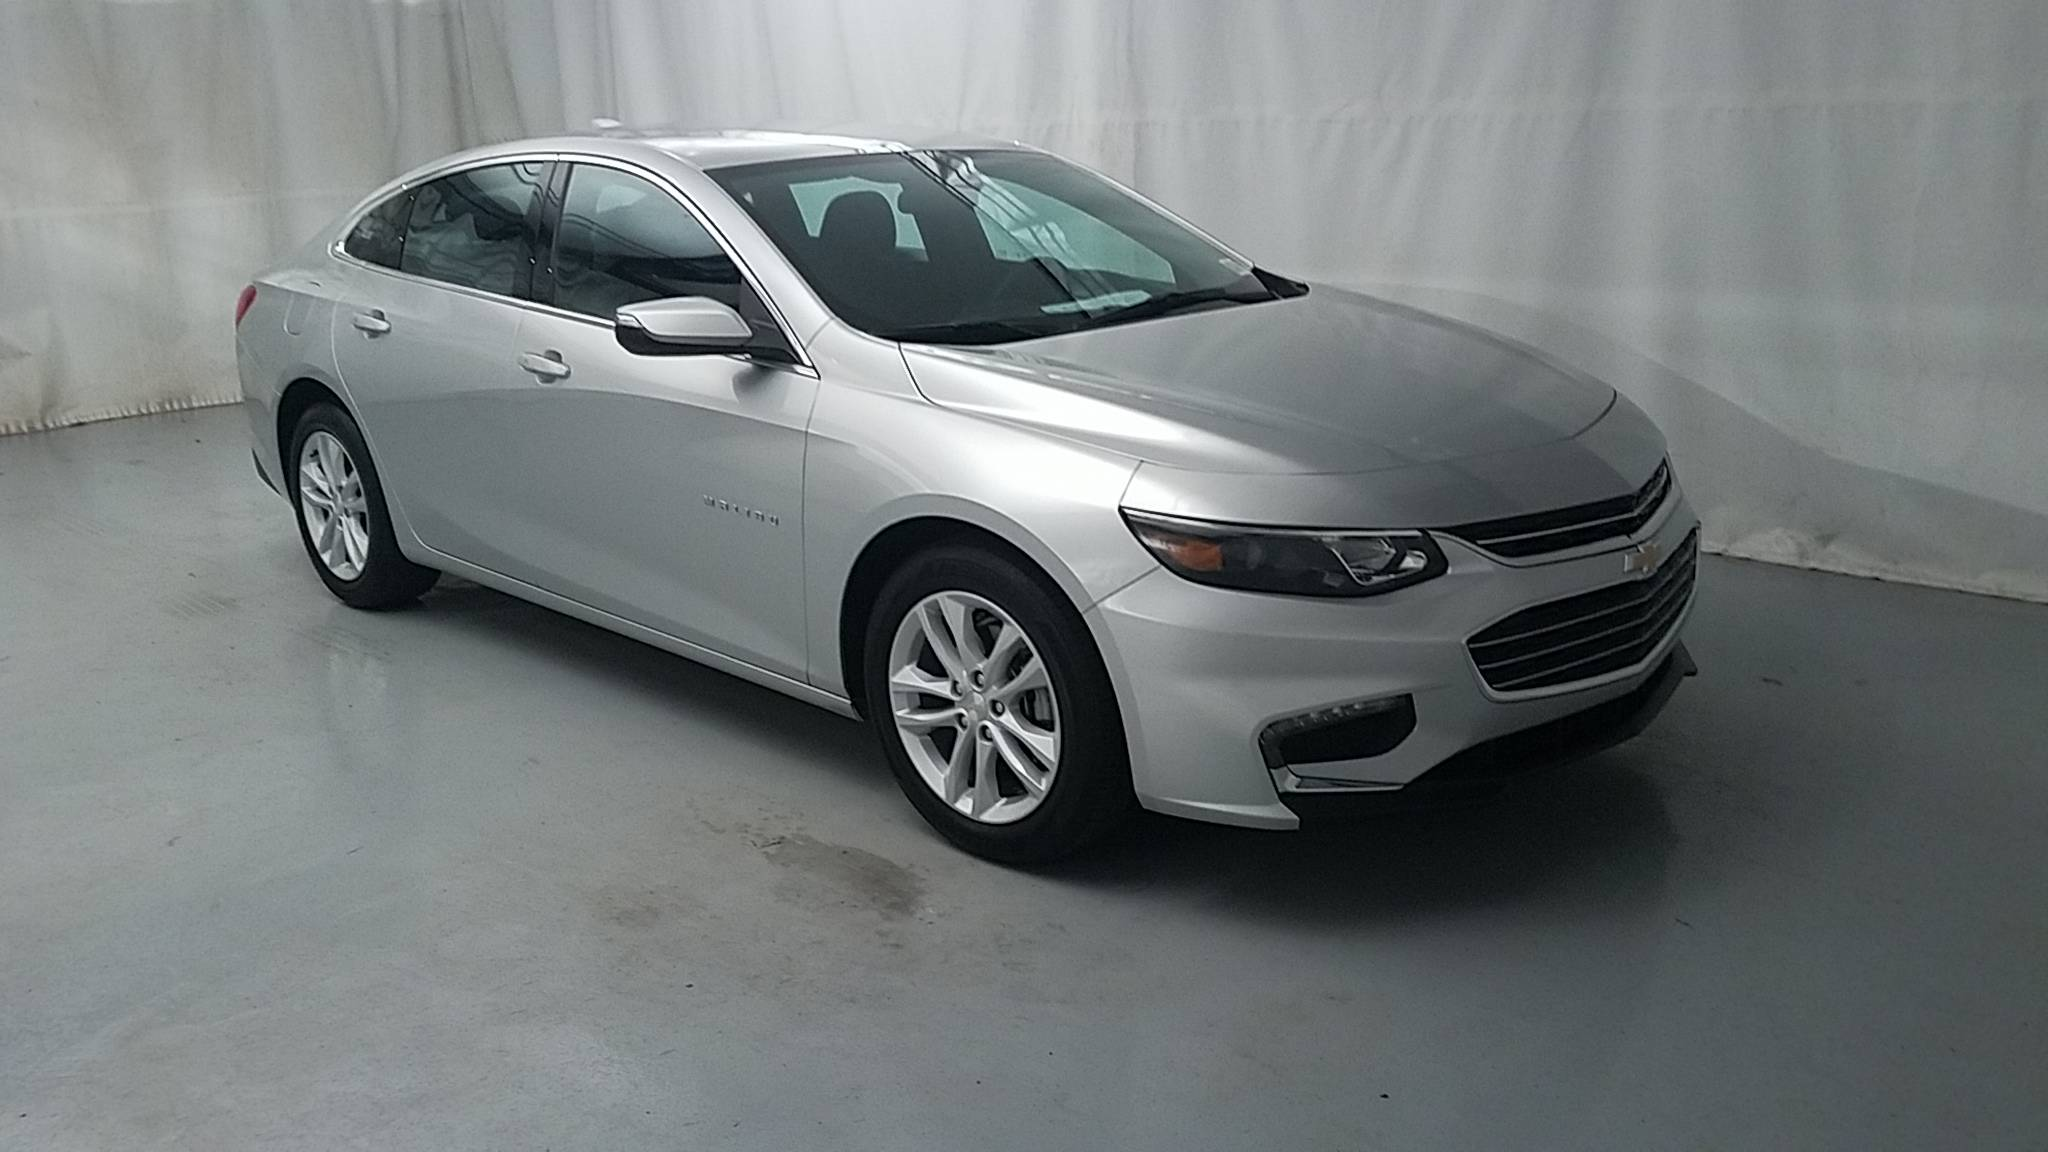 Used Chevrolet Malibu Limited Vehicles for Sale in Hammond LA